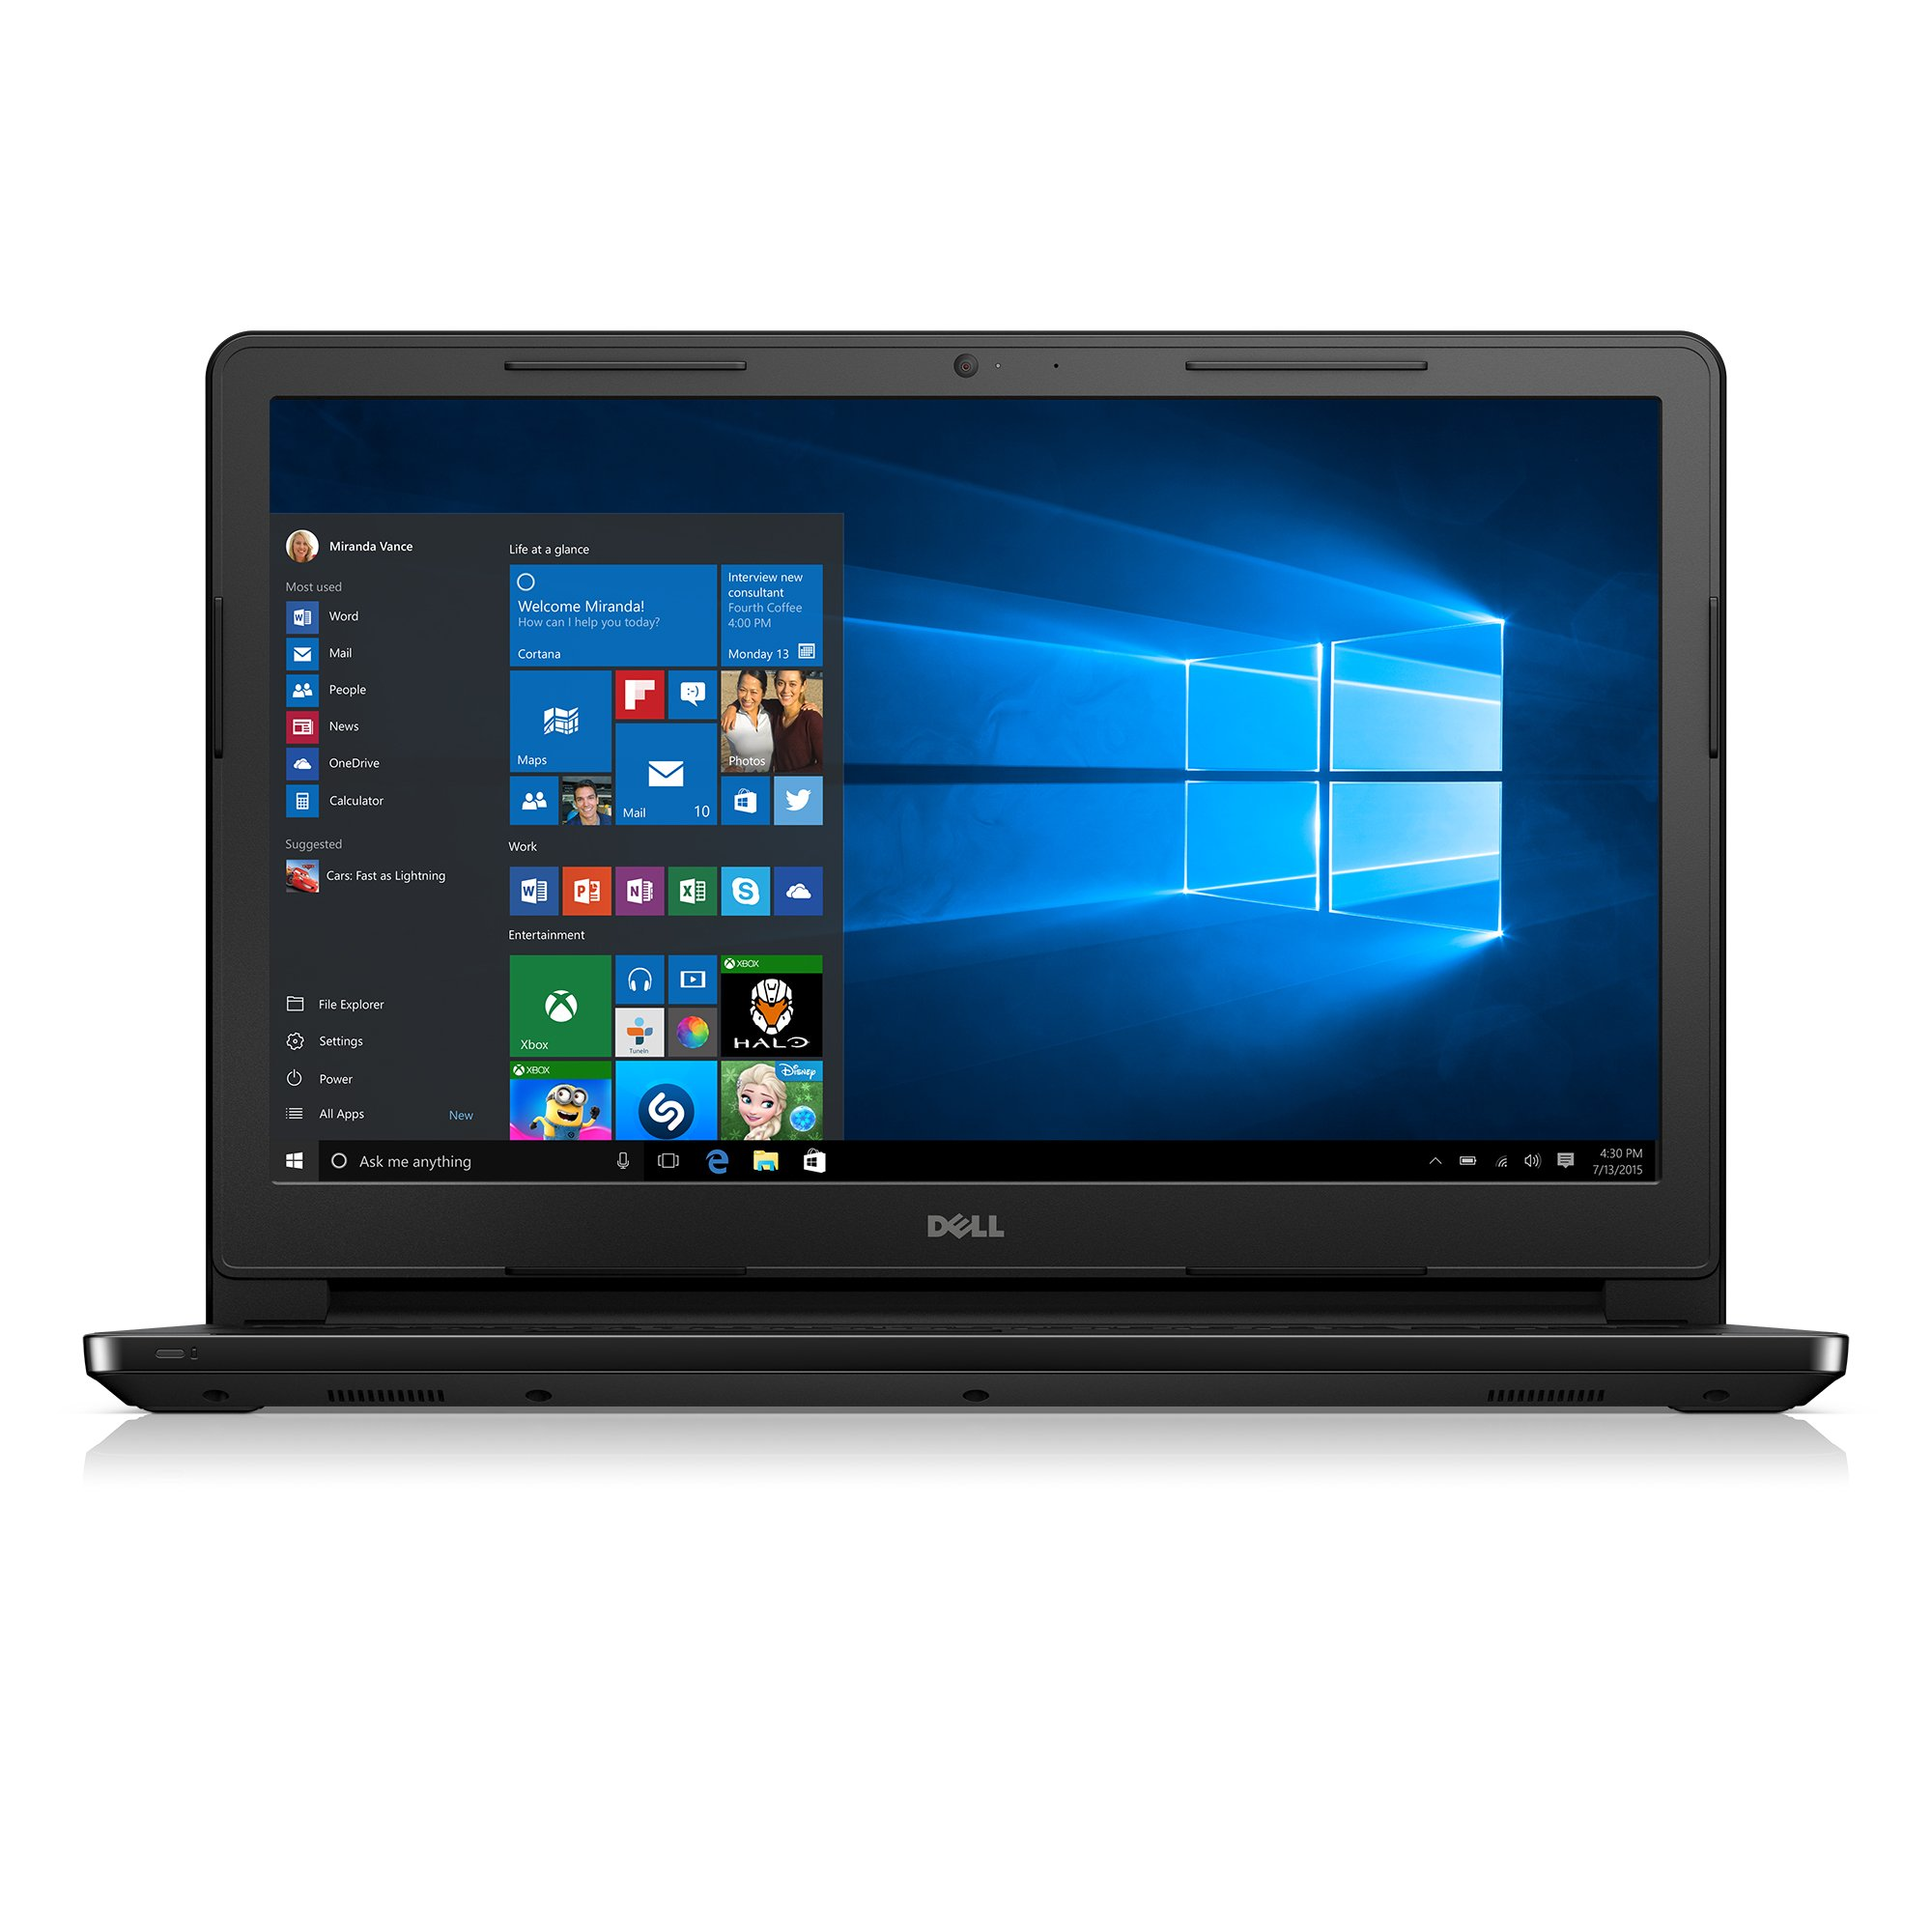 Dell Inspiron i3552-4042BLK 15.6 Inch Laptop (Intel Celeron, 4 GB RAM, 500 GB HDD, Black) by Dell